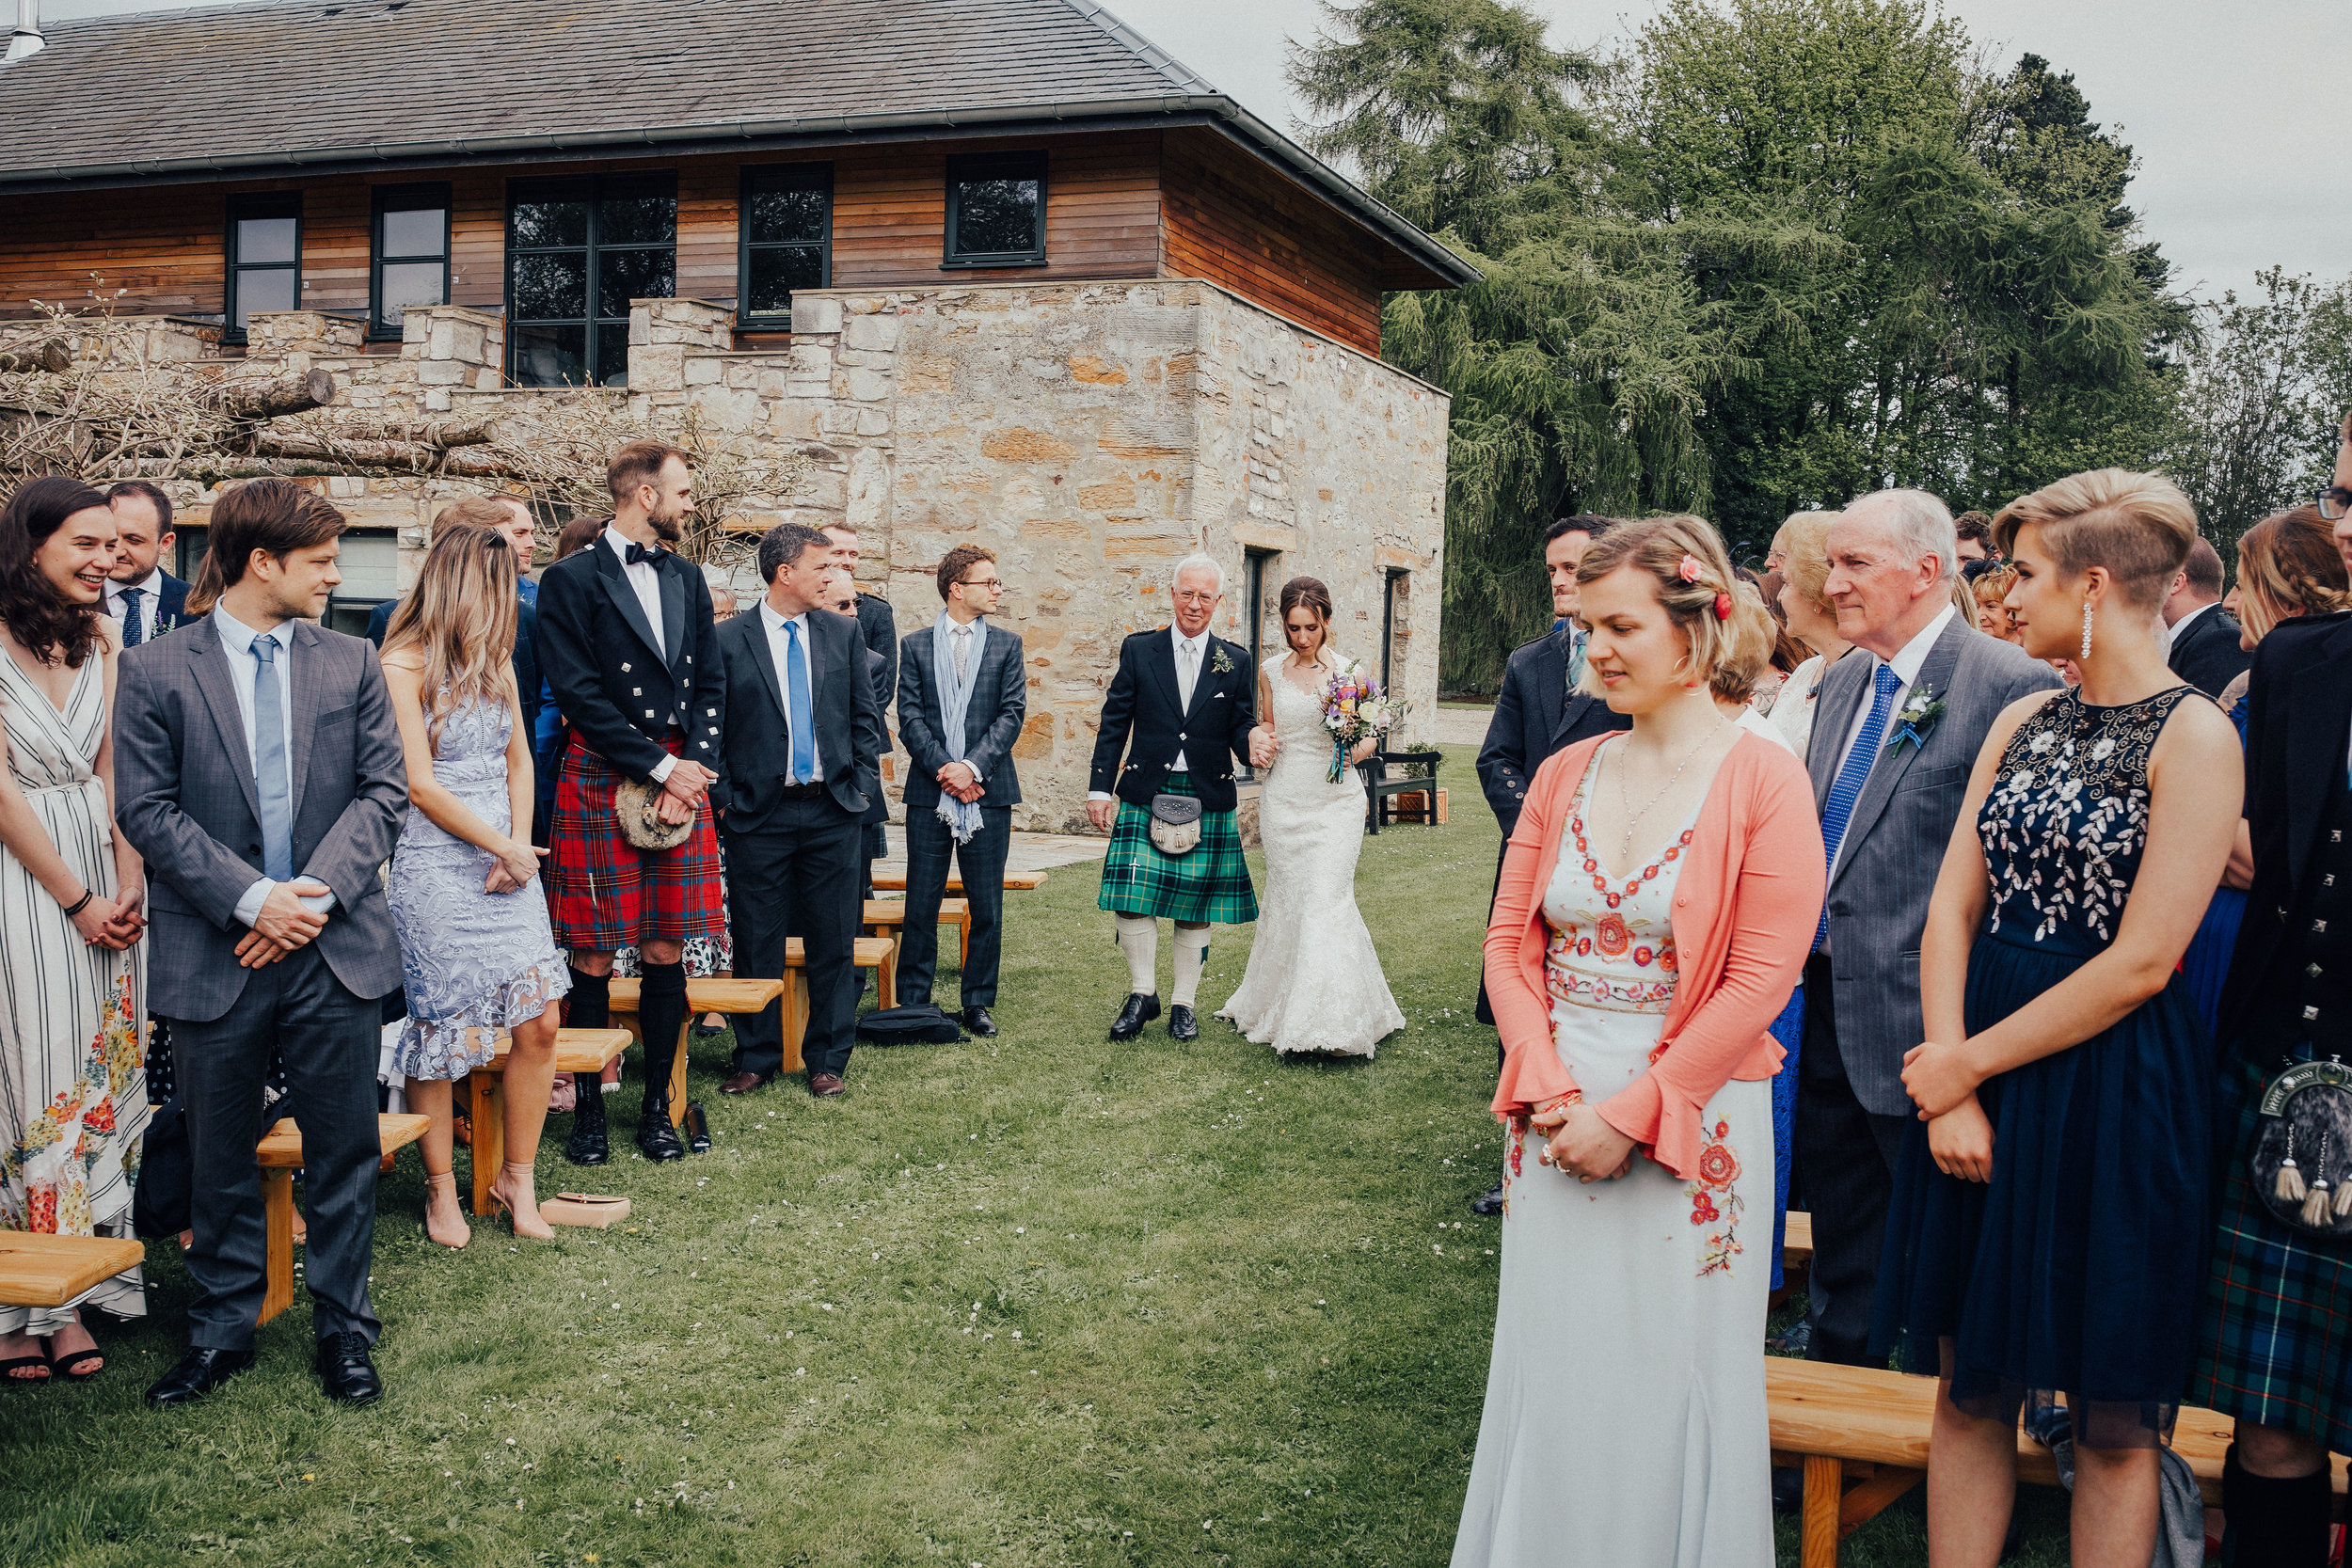 WINDMILL_BARN_DUNFERMLINE_WEDDING_PJ_PHILLIPS_PHOTOGRAPHY_59.jpg